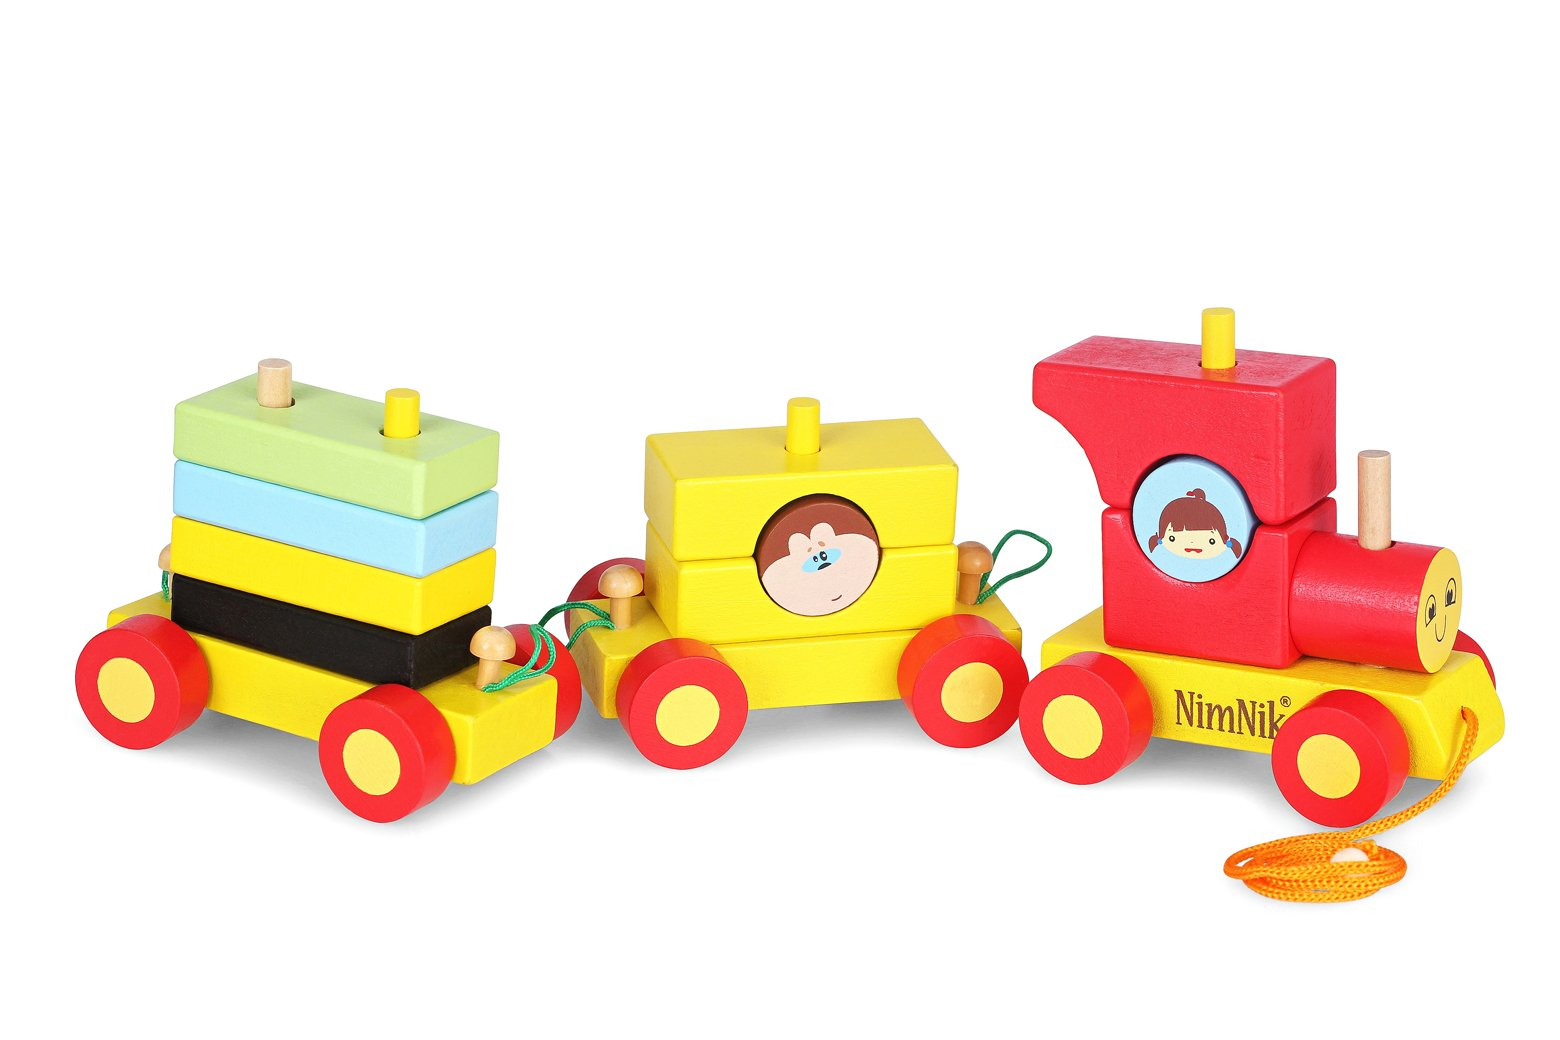 Cheap Educational Toys : Buy pull along toys wooden train set for toddlers stacking wooden